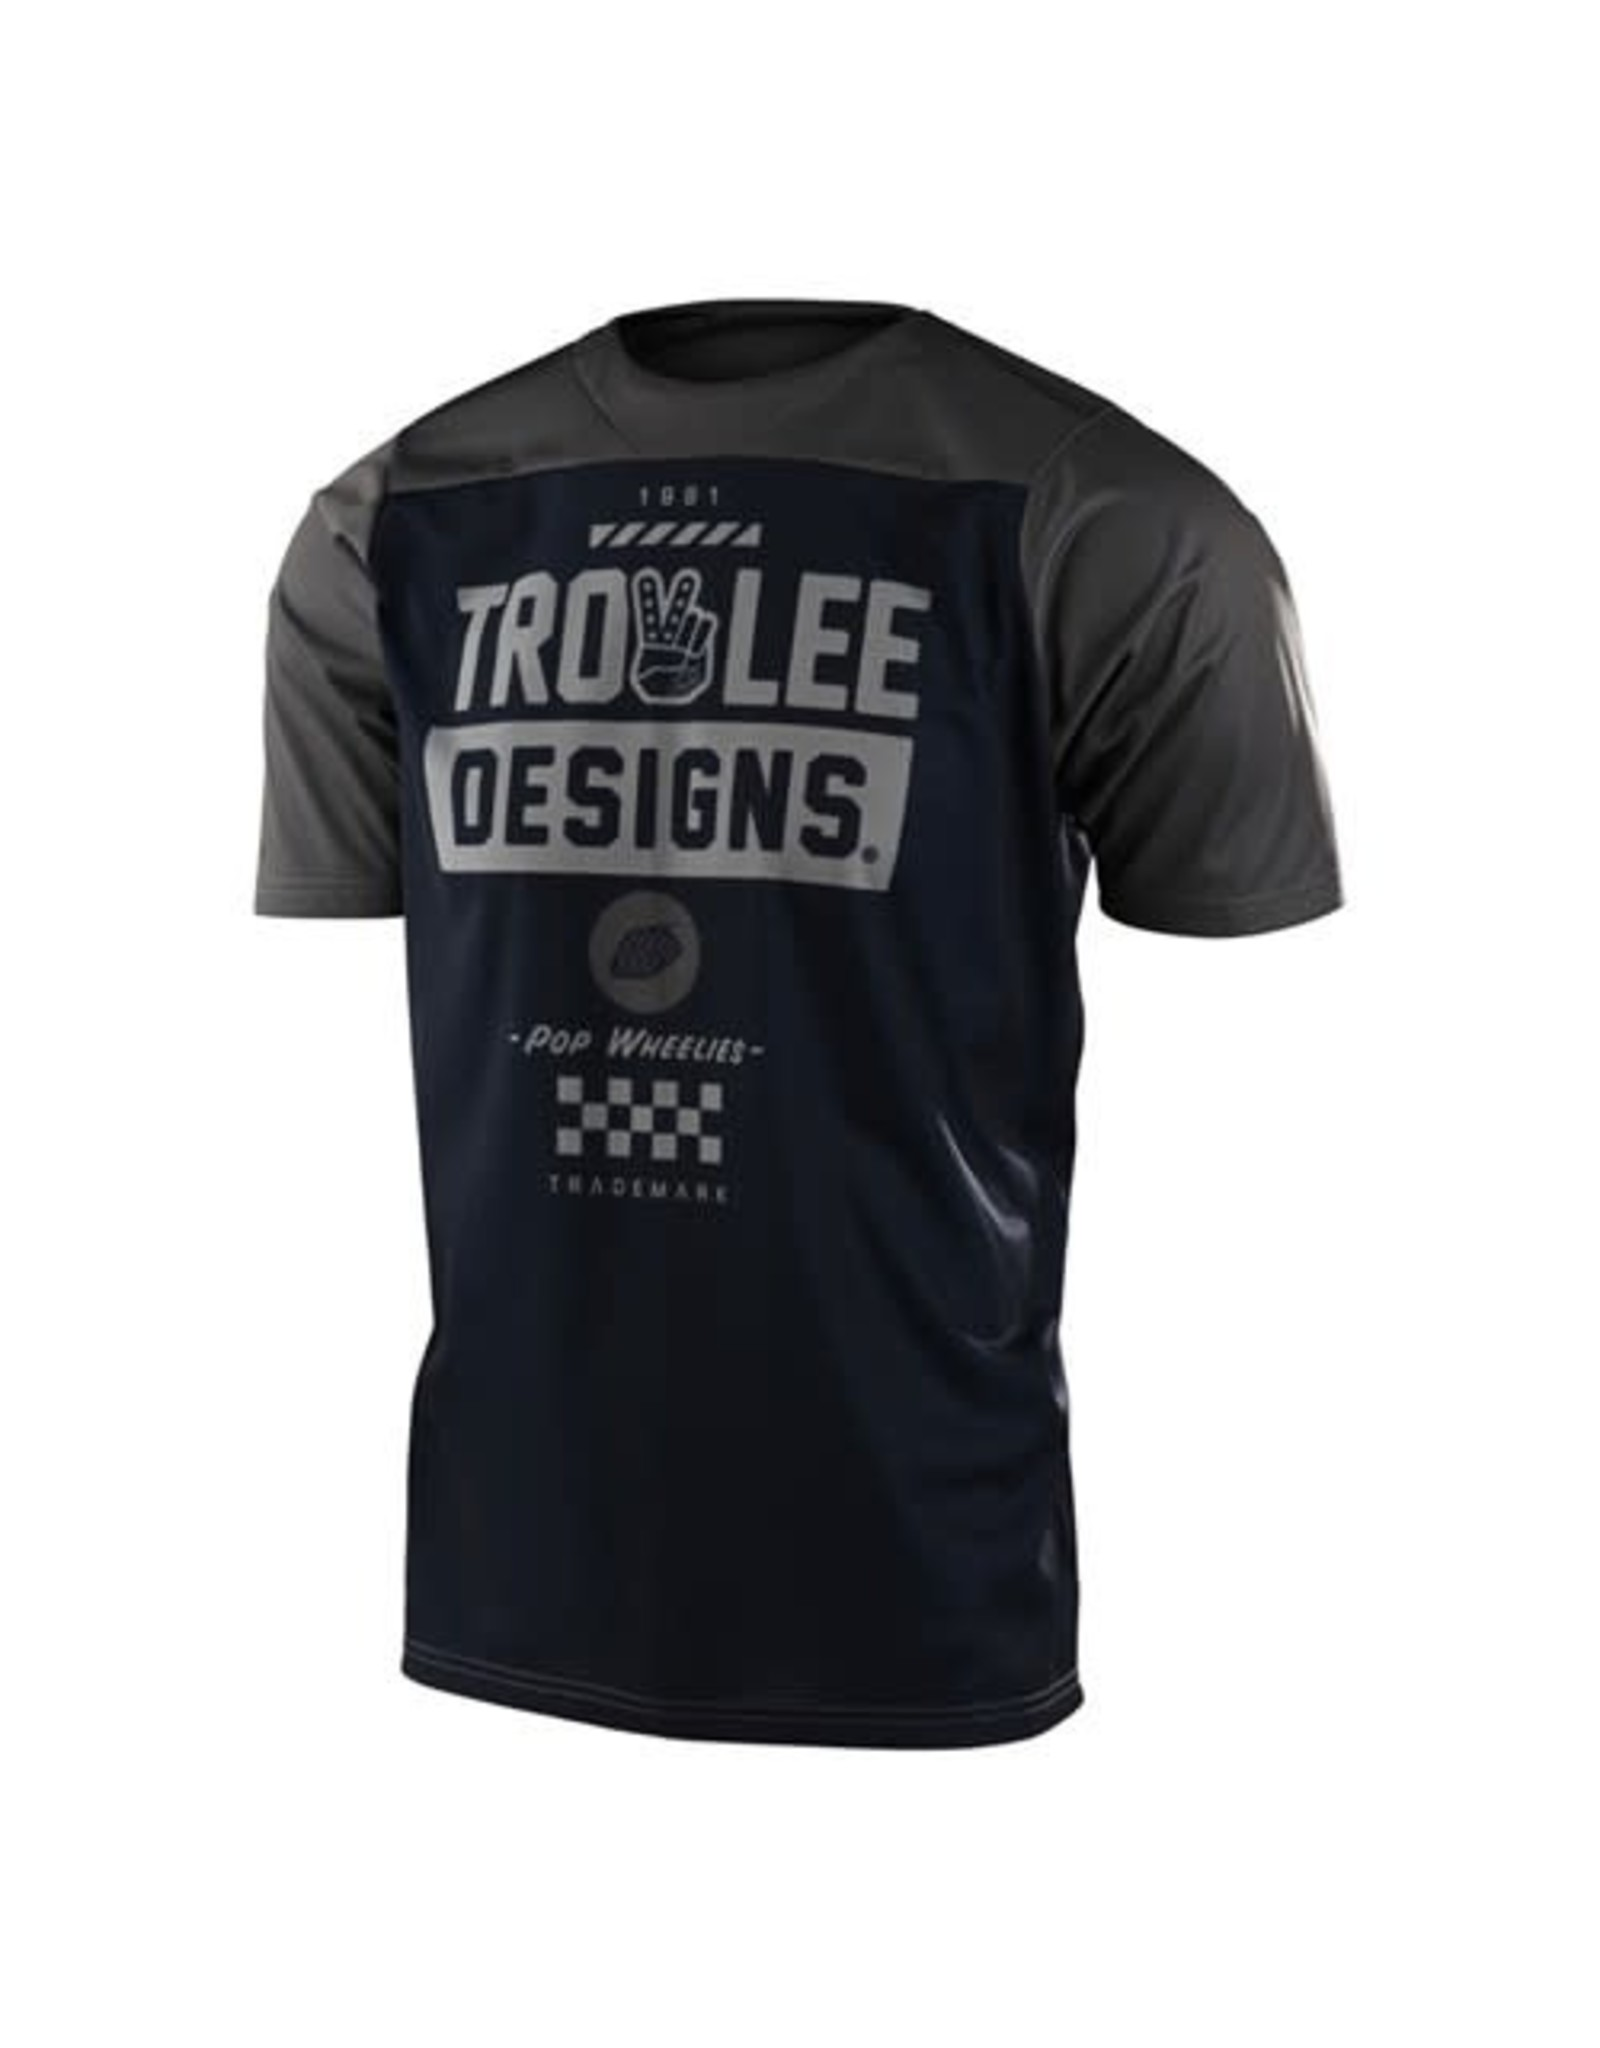 TROY LEE DESIGNS TROY LEE DESIGNS '22 SKYLINE SS JERSEY CAMBER